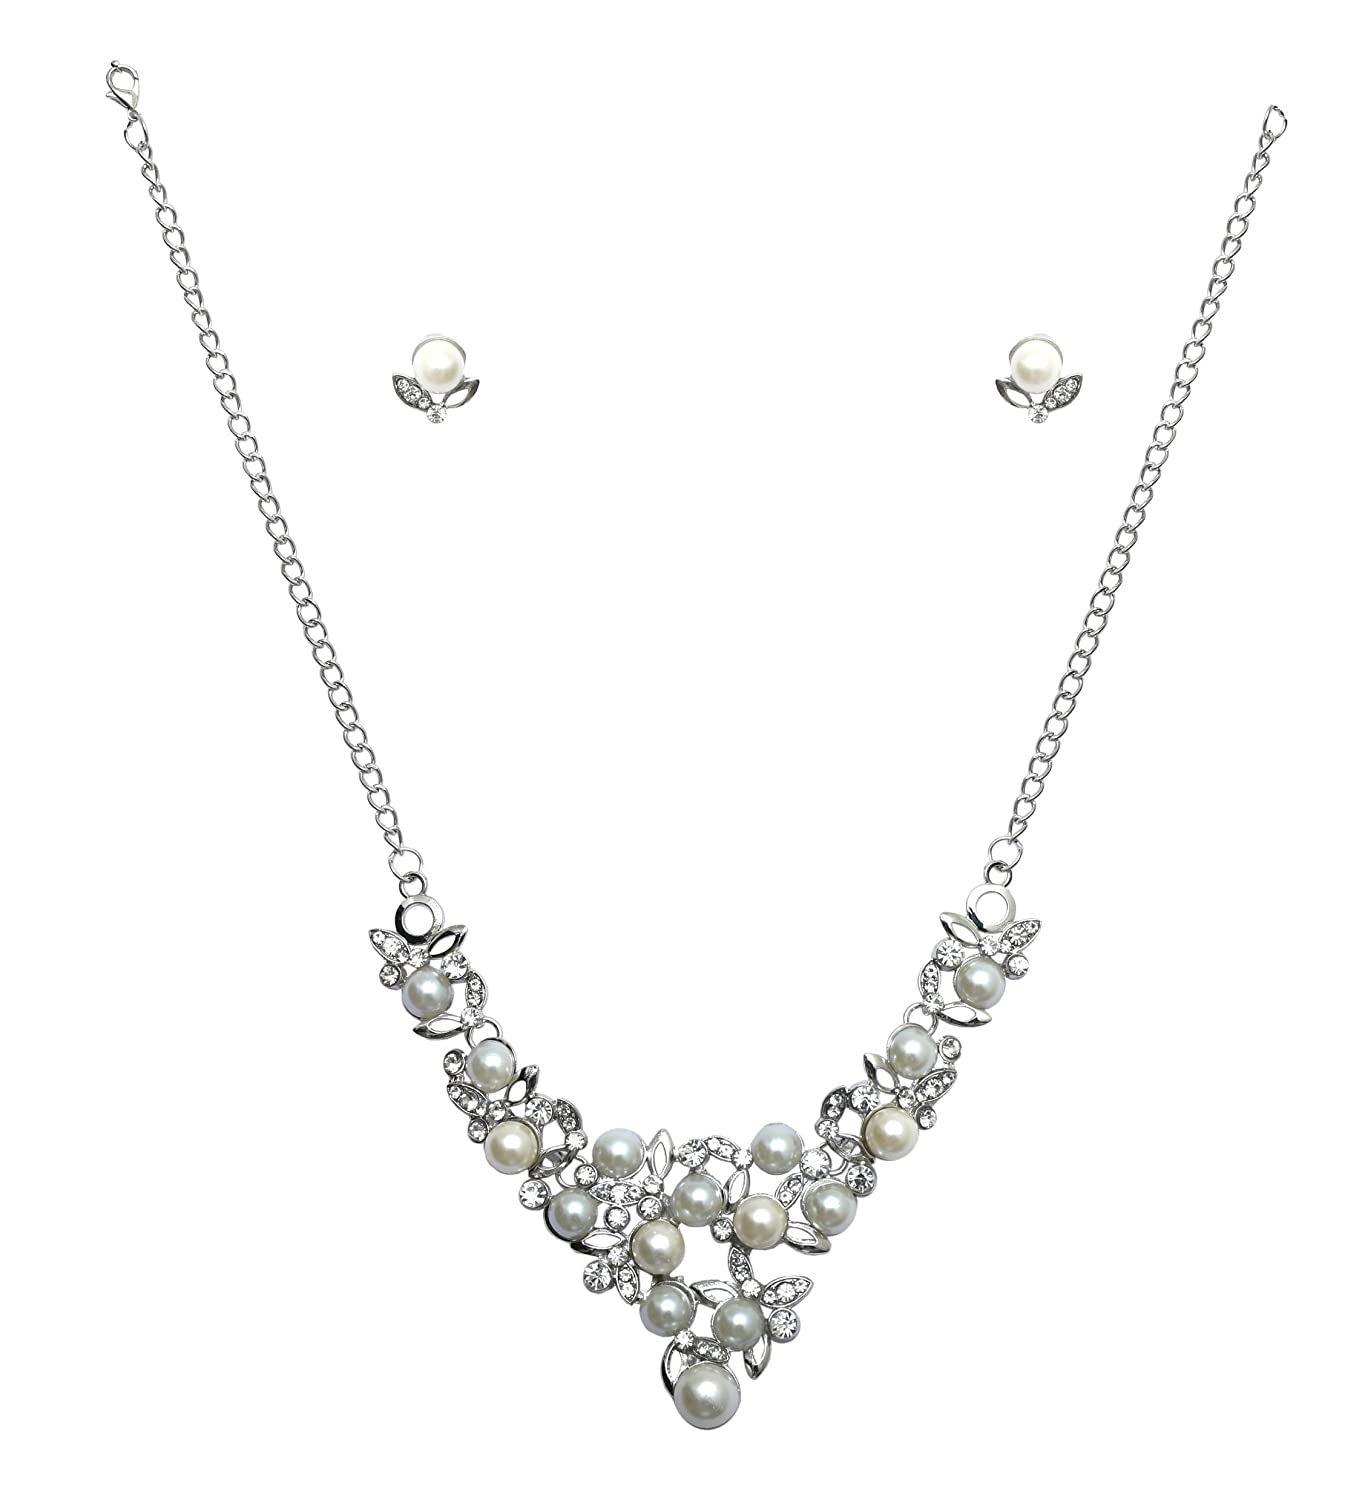 SILVER /& PEARL DROP NECKLACE IN WHITE **UK SELLER** WEDDING PRESENT